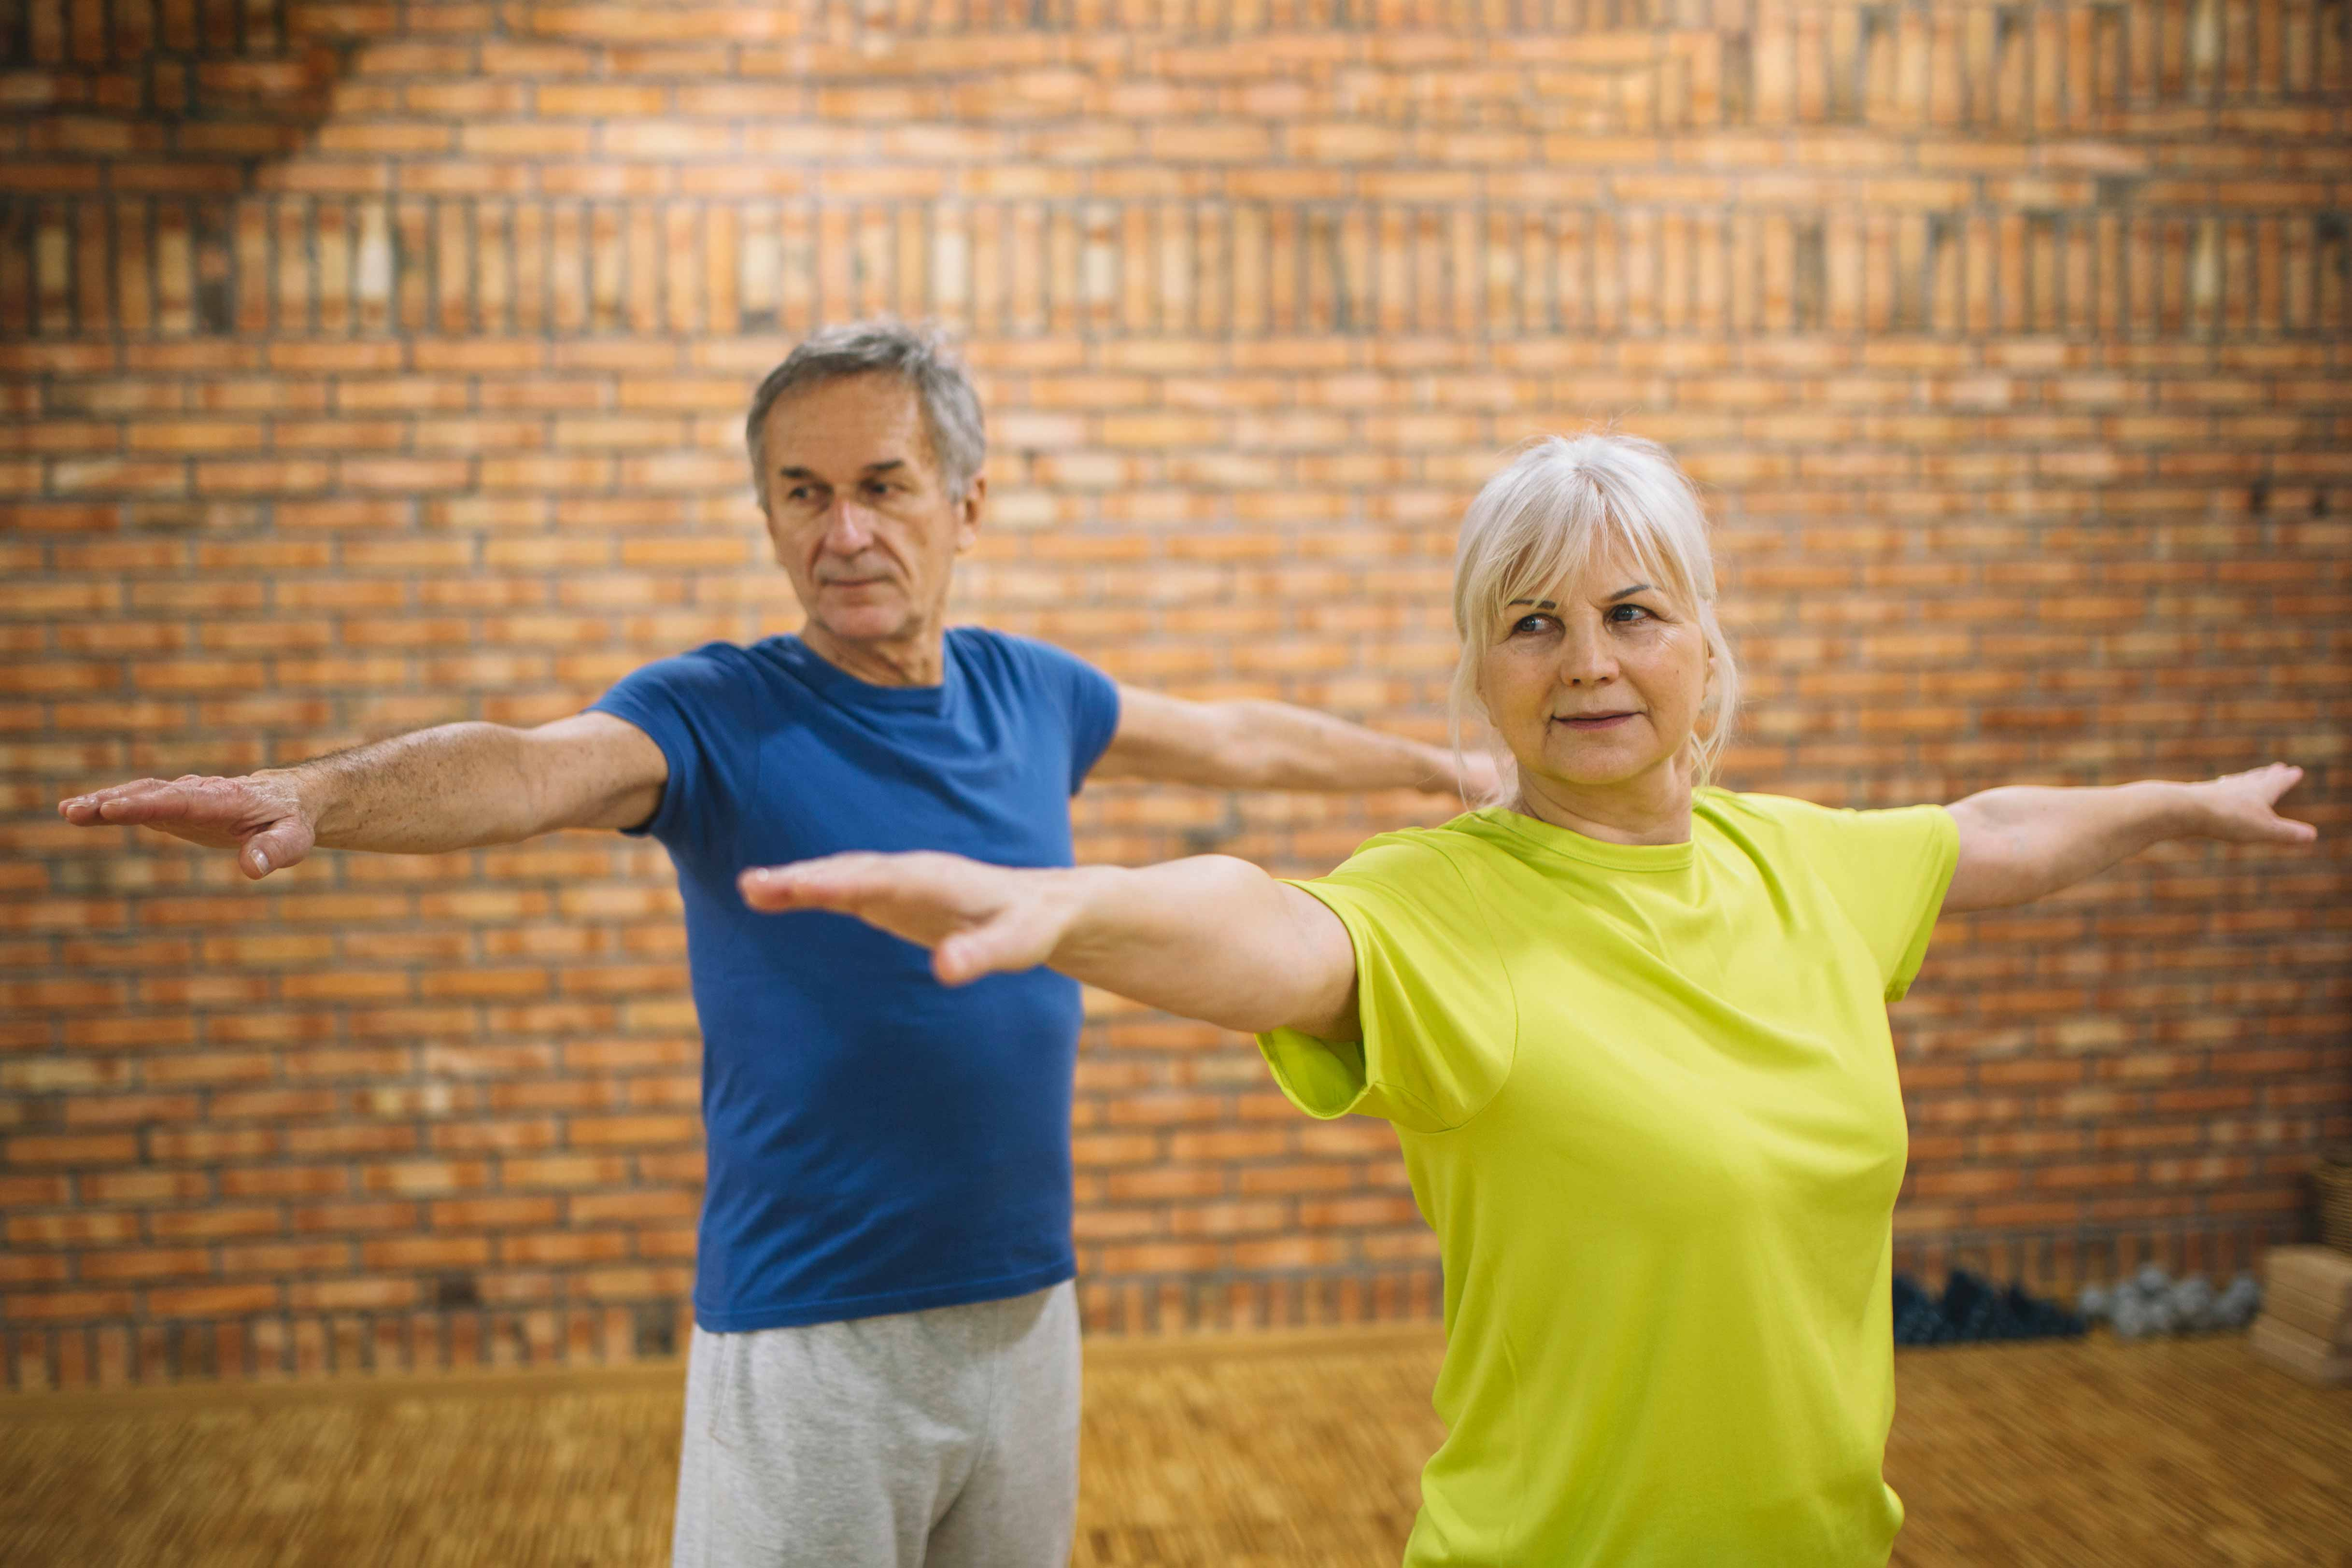 Exercises for balance training for people with Parkinson's disease